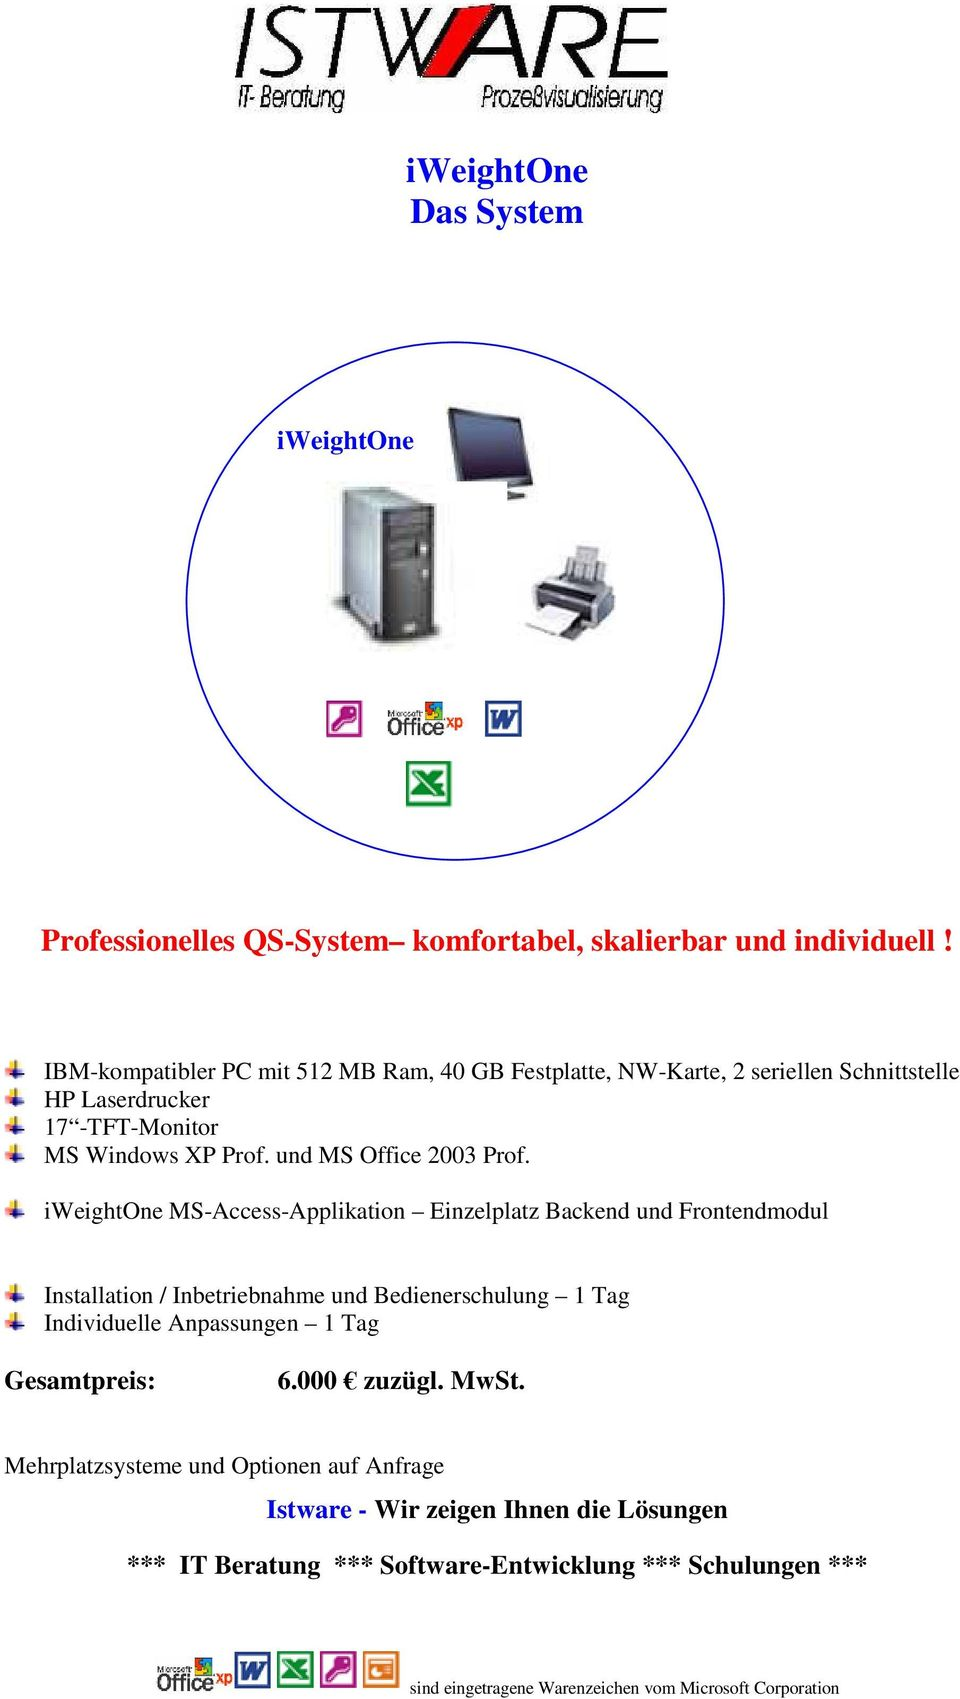 MS Windows XP Prof. und MS Office 2003 Prof.